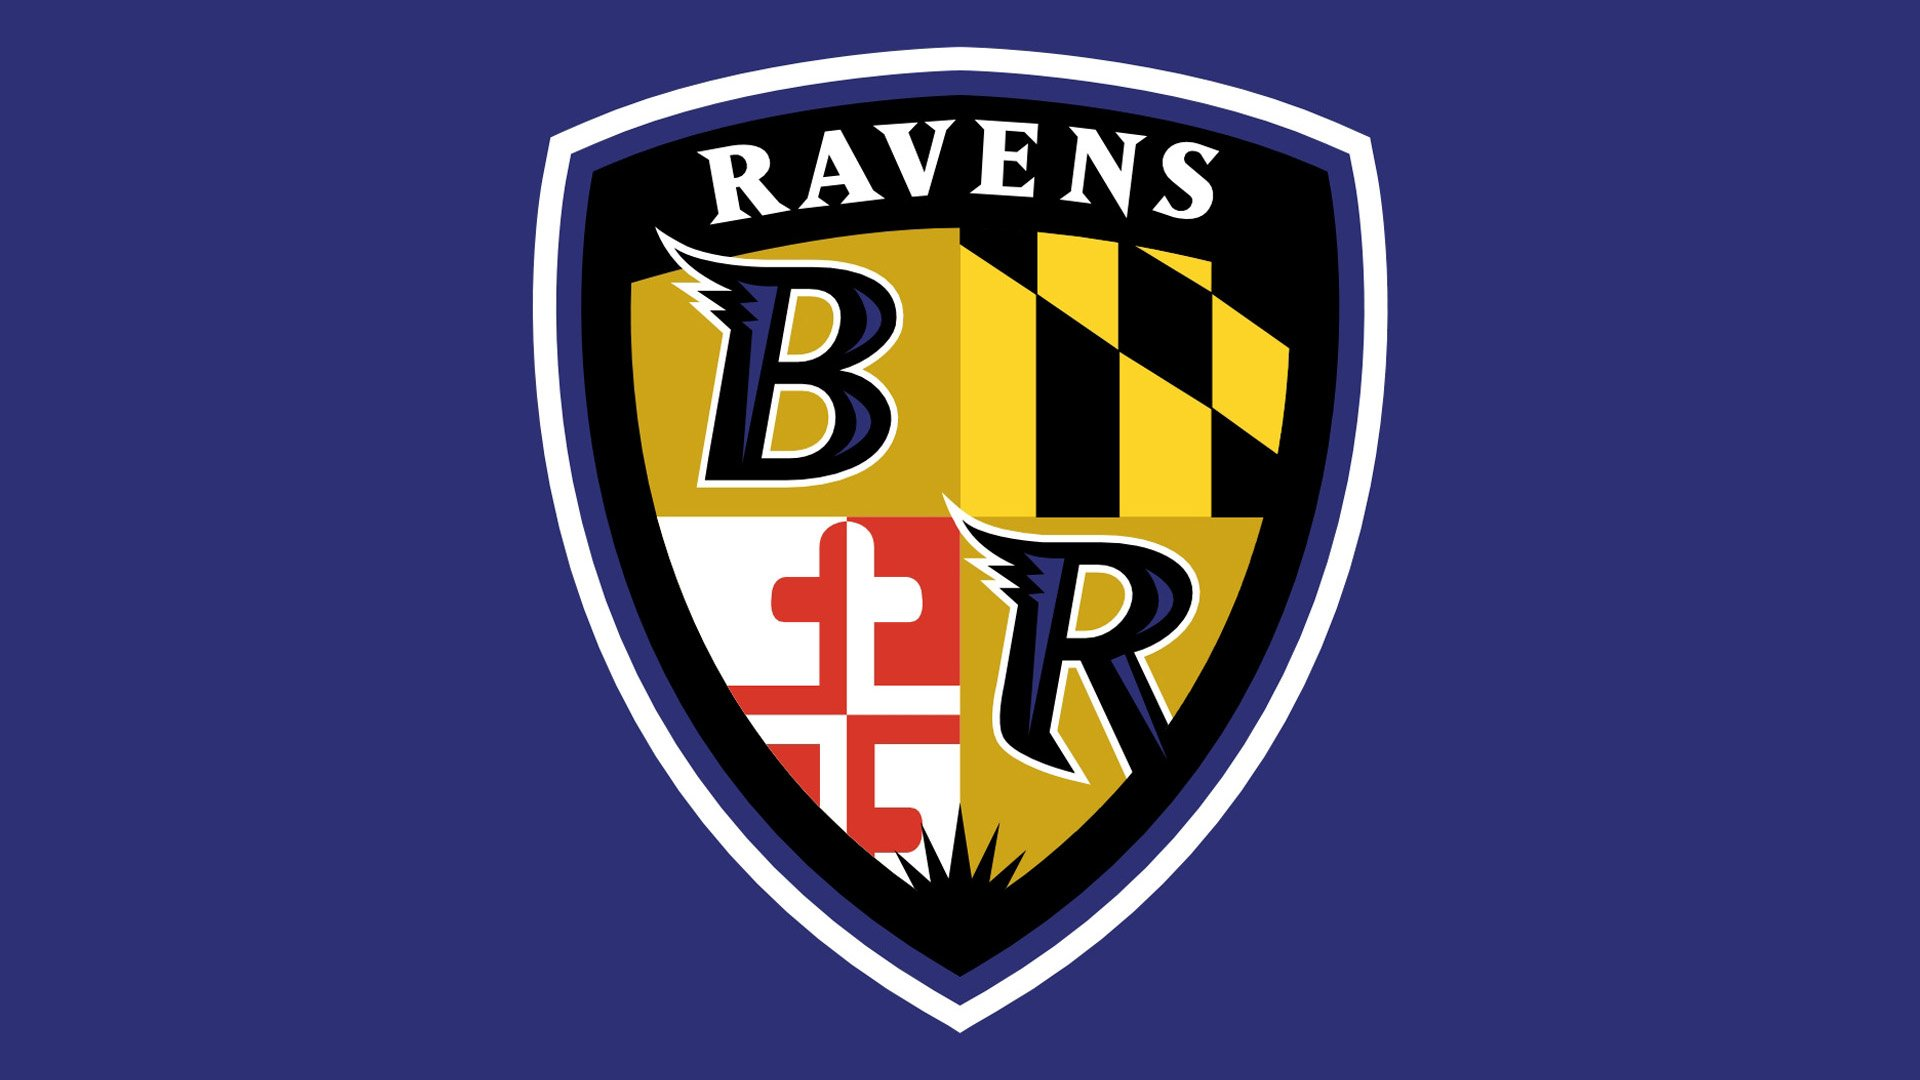 Collection Of Baltimore Ravens Wallpaper On Hdwallpapers 1920x1080